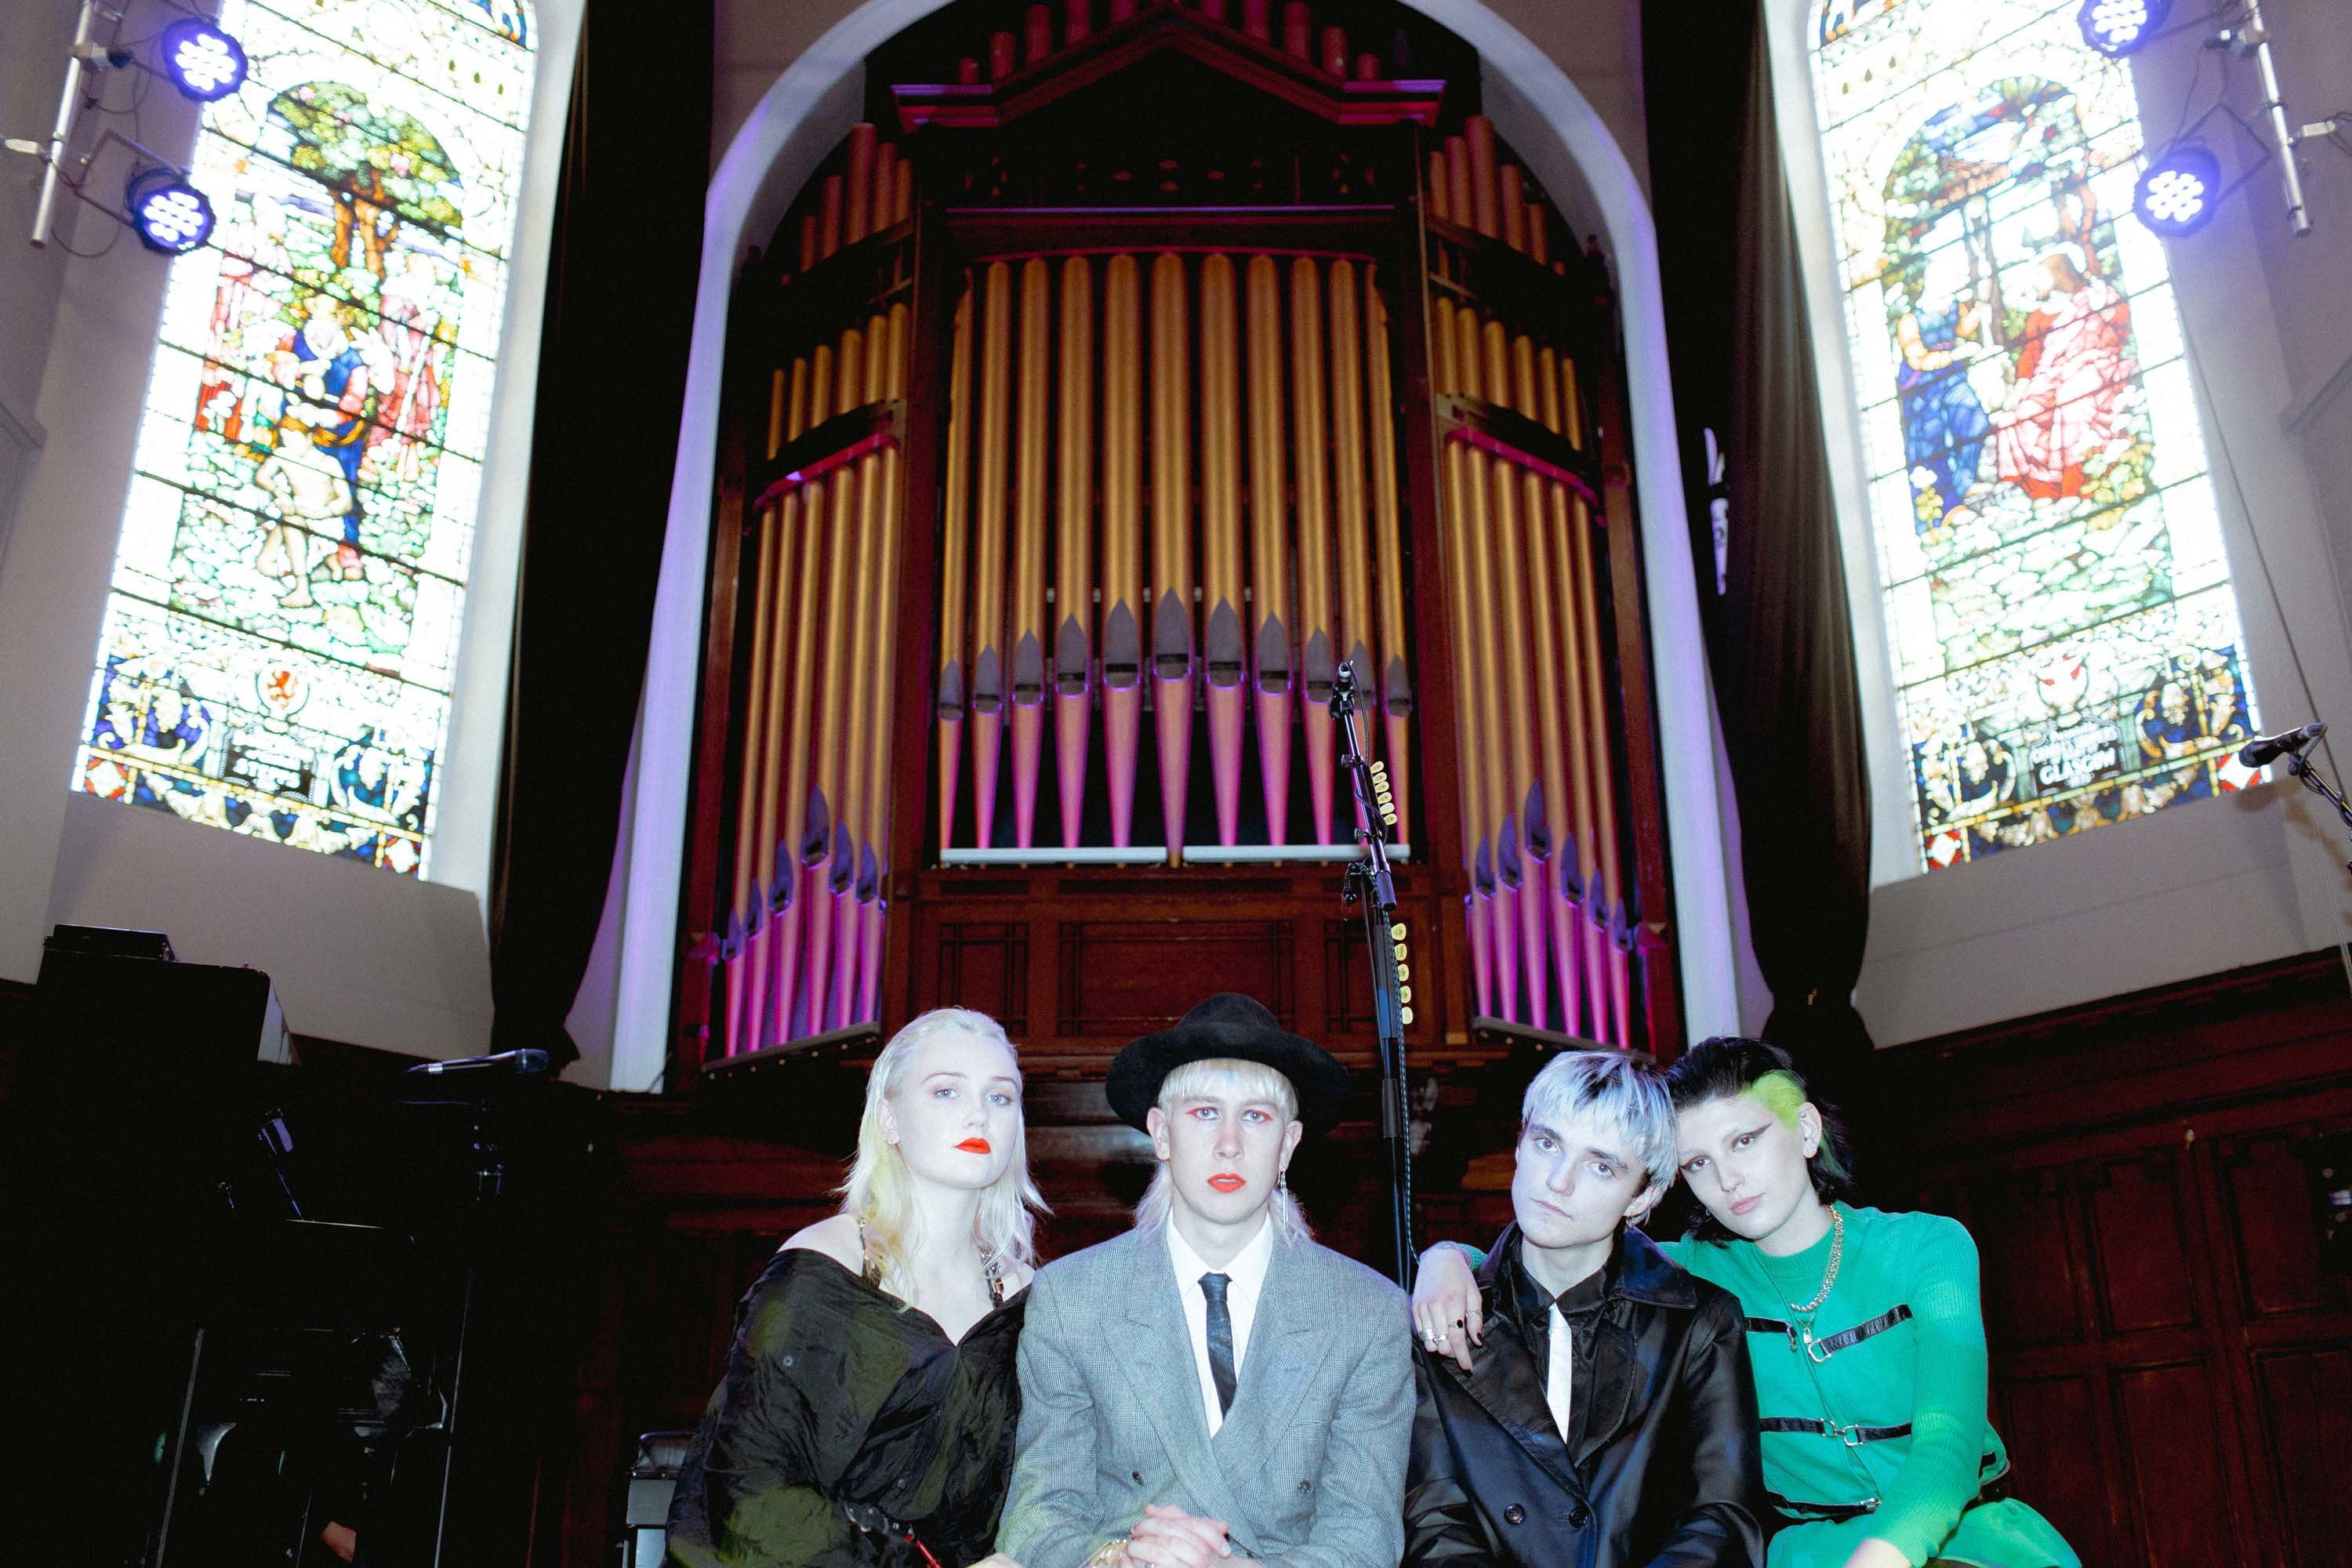 The Ninth Wave, Lucia, Walt Disco: Introducing The Glasgow School